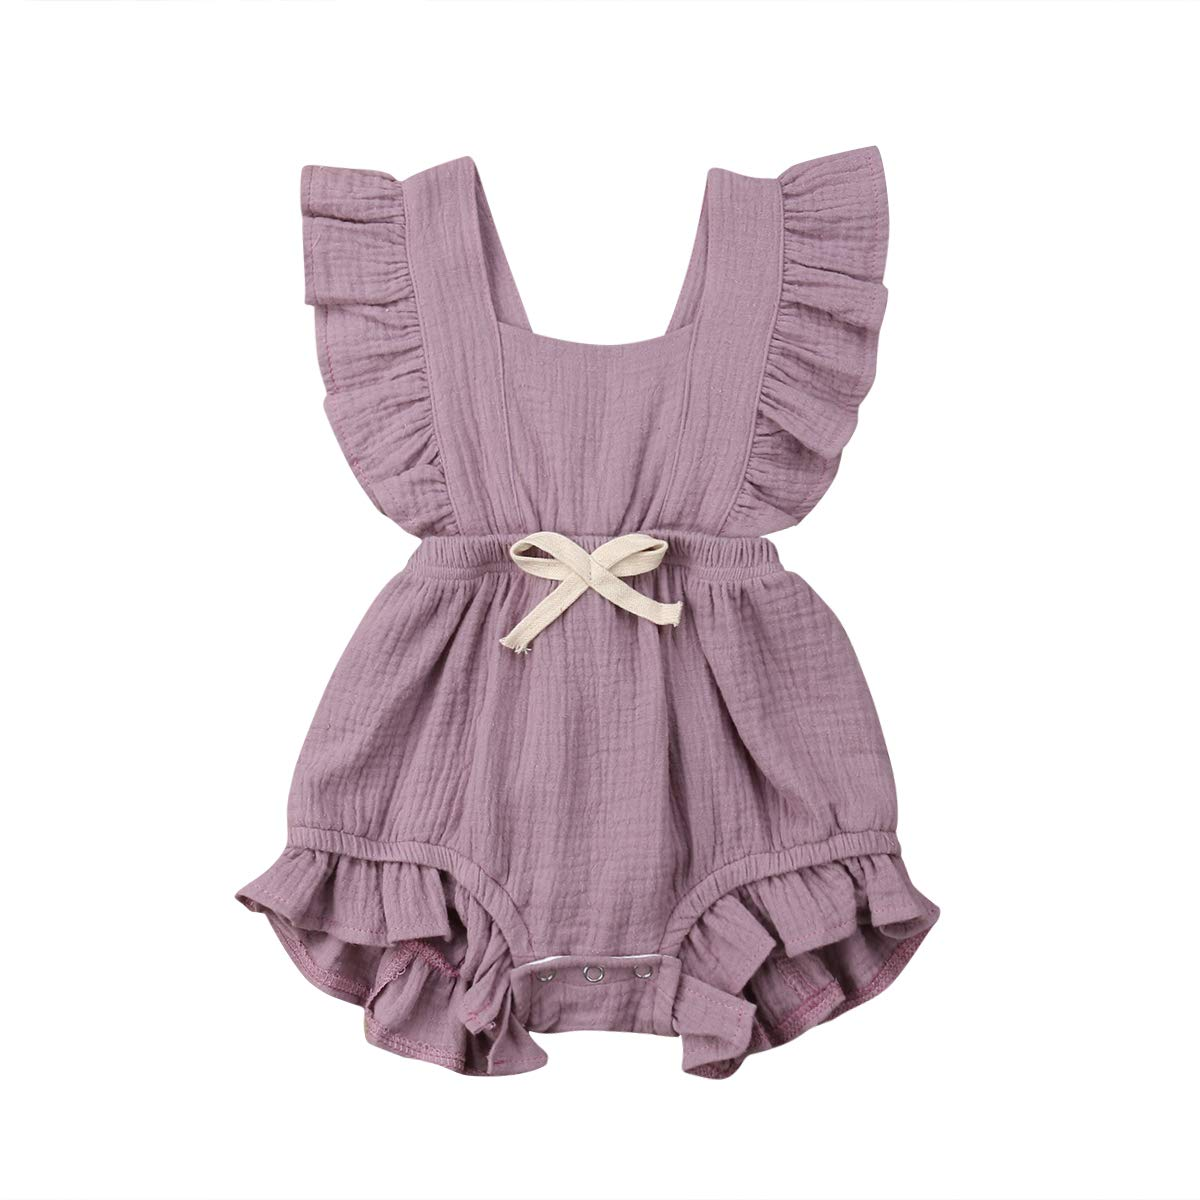 citgeett Newborn Baby Girl Sleeveless Ruffle Solid Color Romper One-Pieces Backless Bow Jumpsuit Outfit Summer Clothes